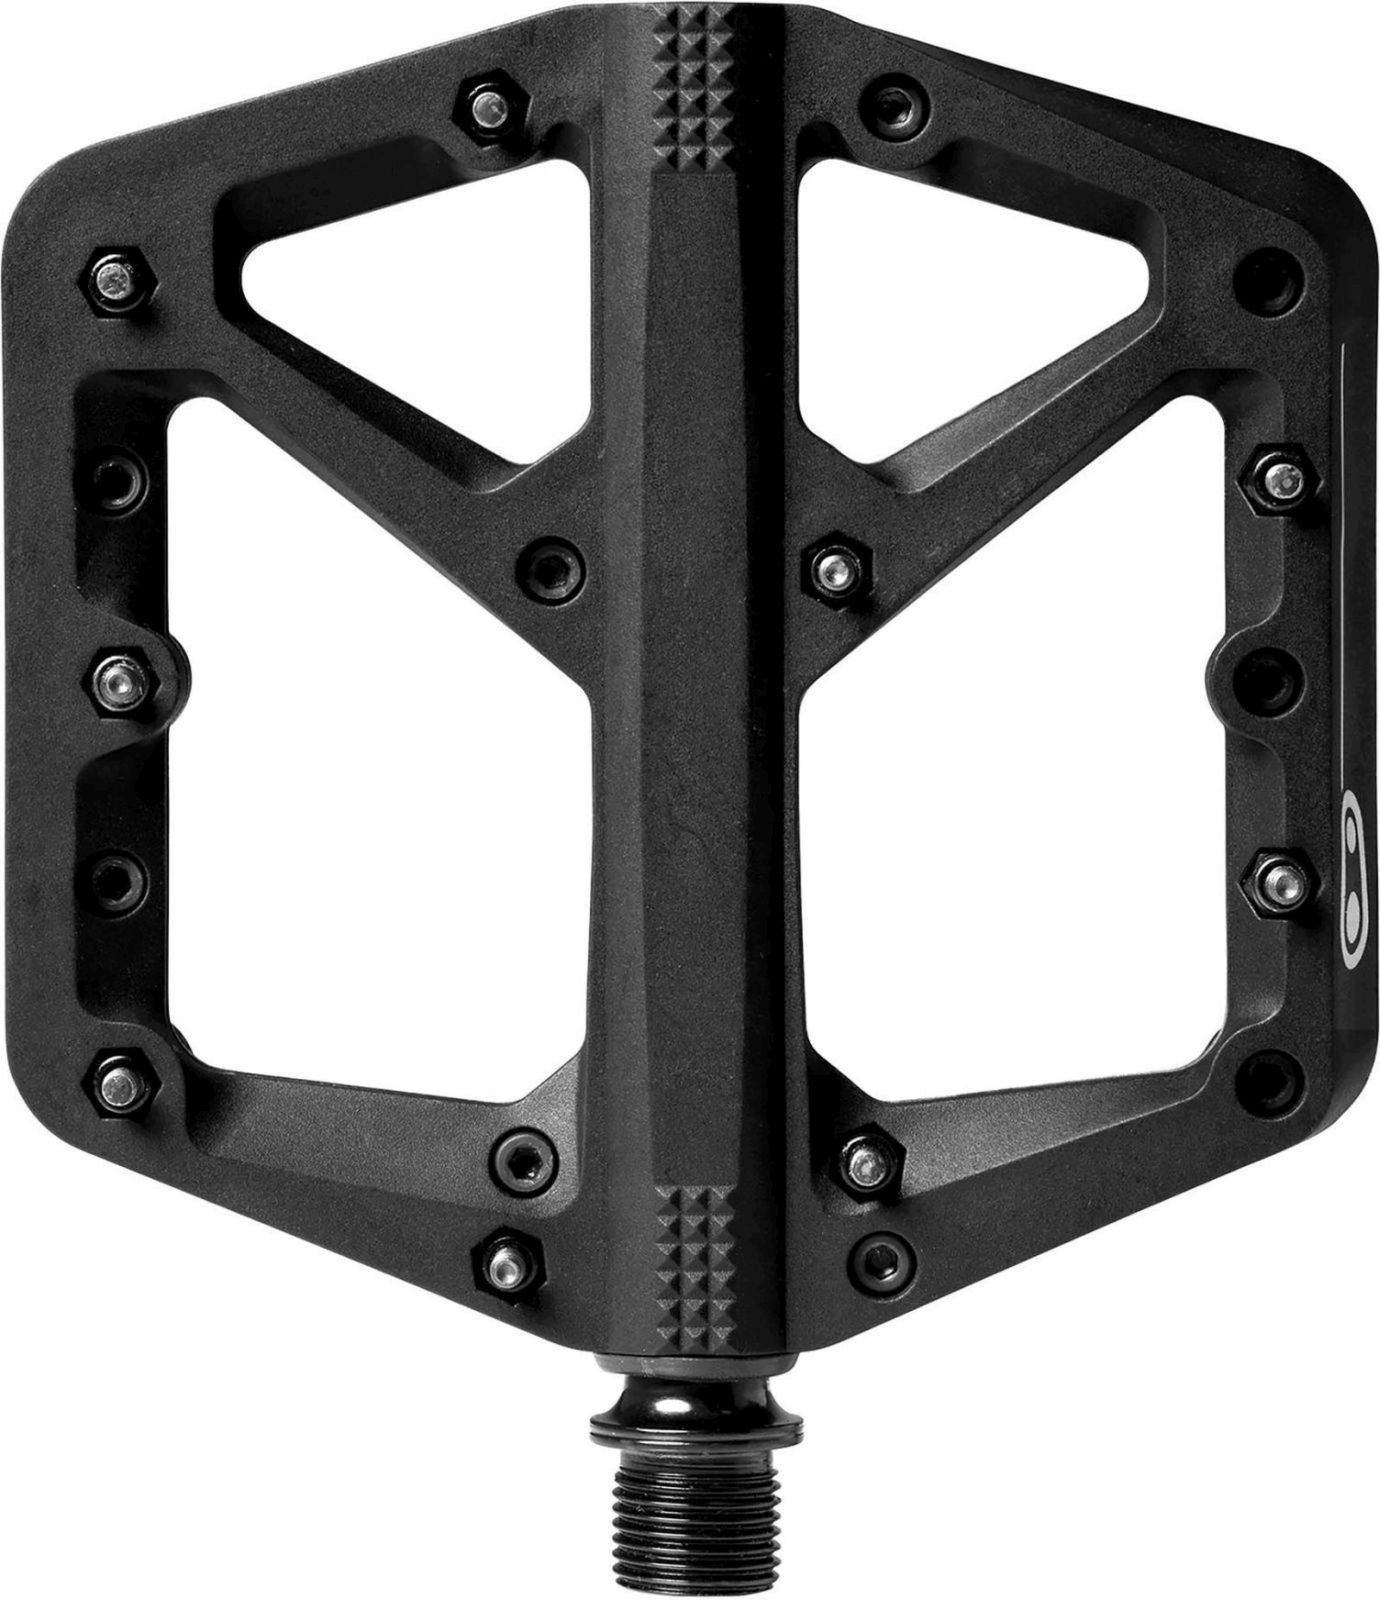 Crankbrothers Stamp 1 Large - black uni